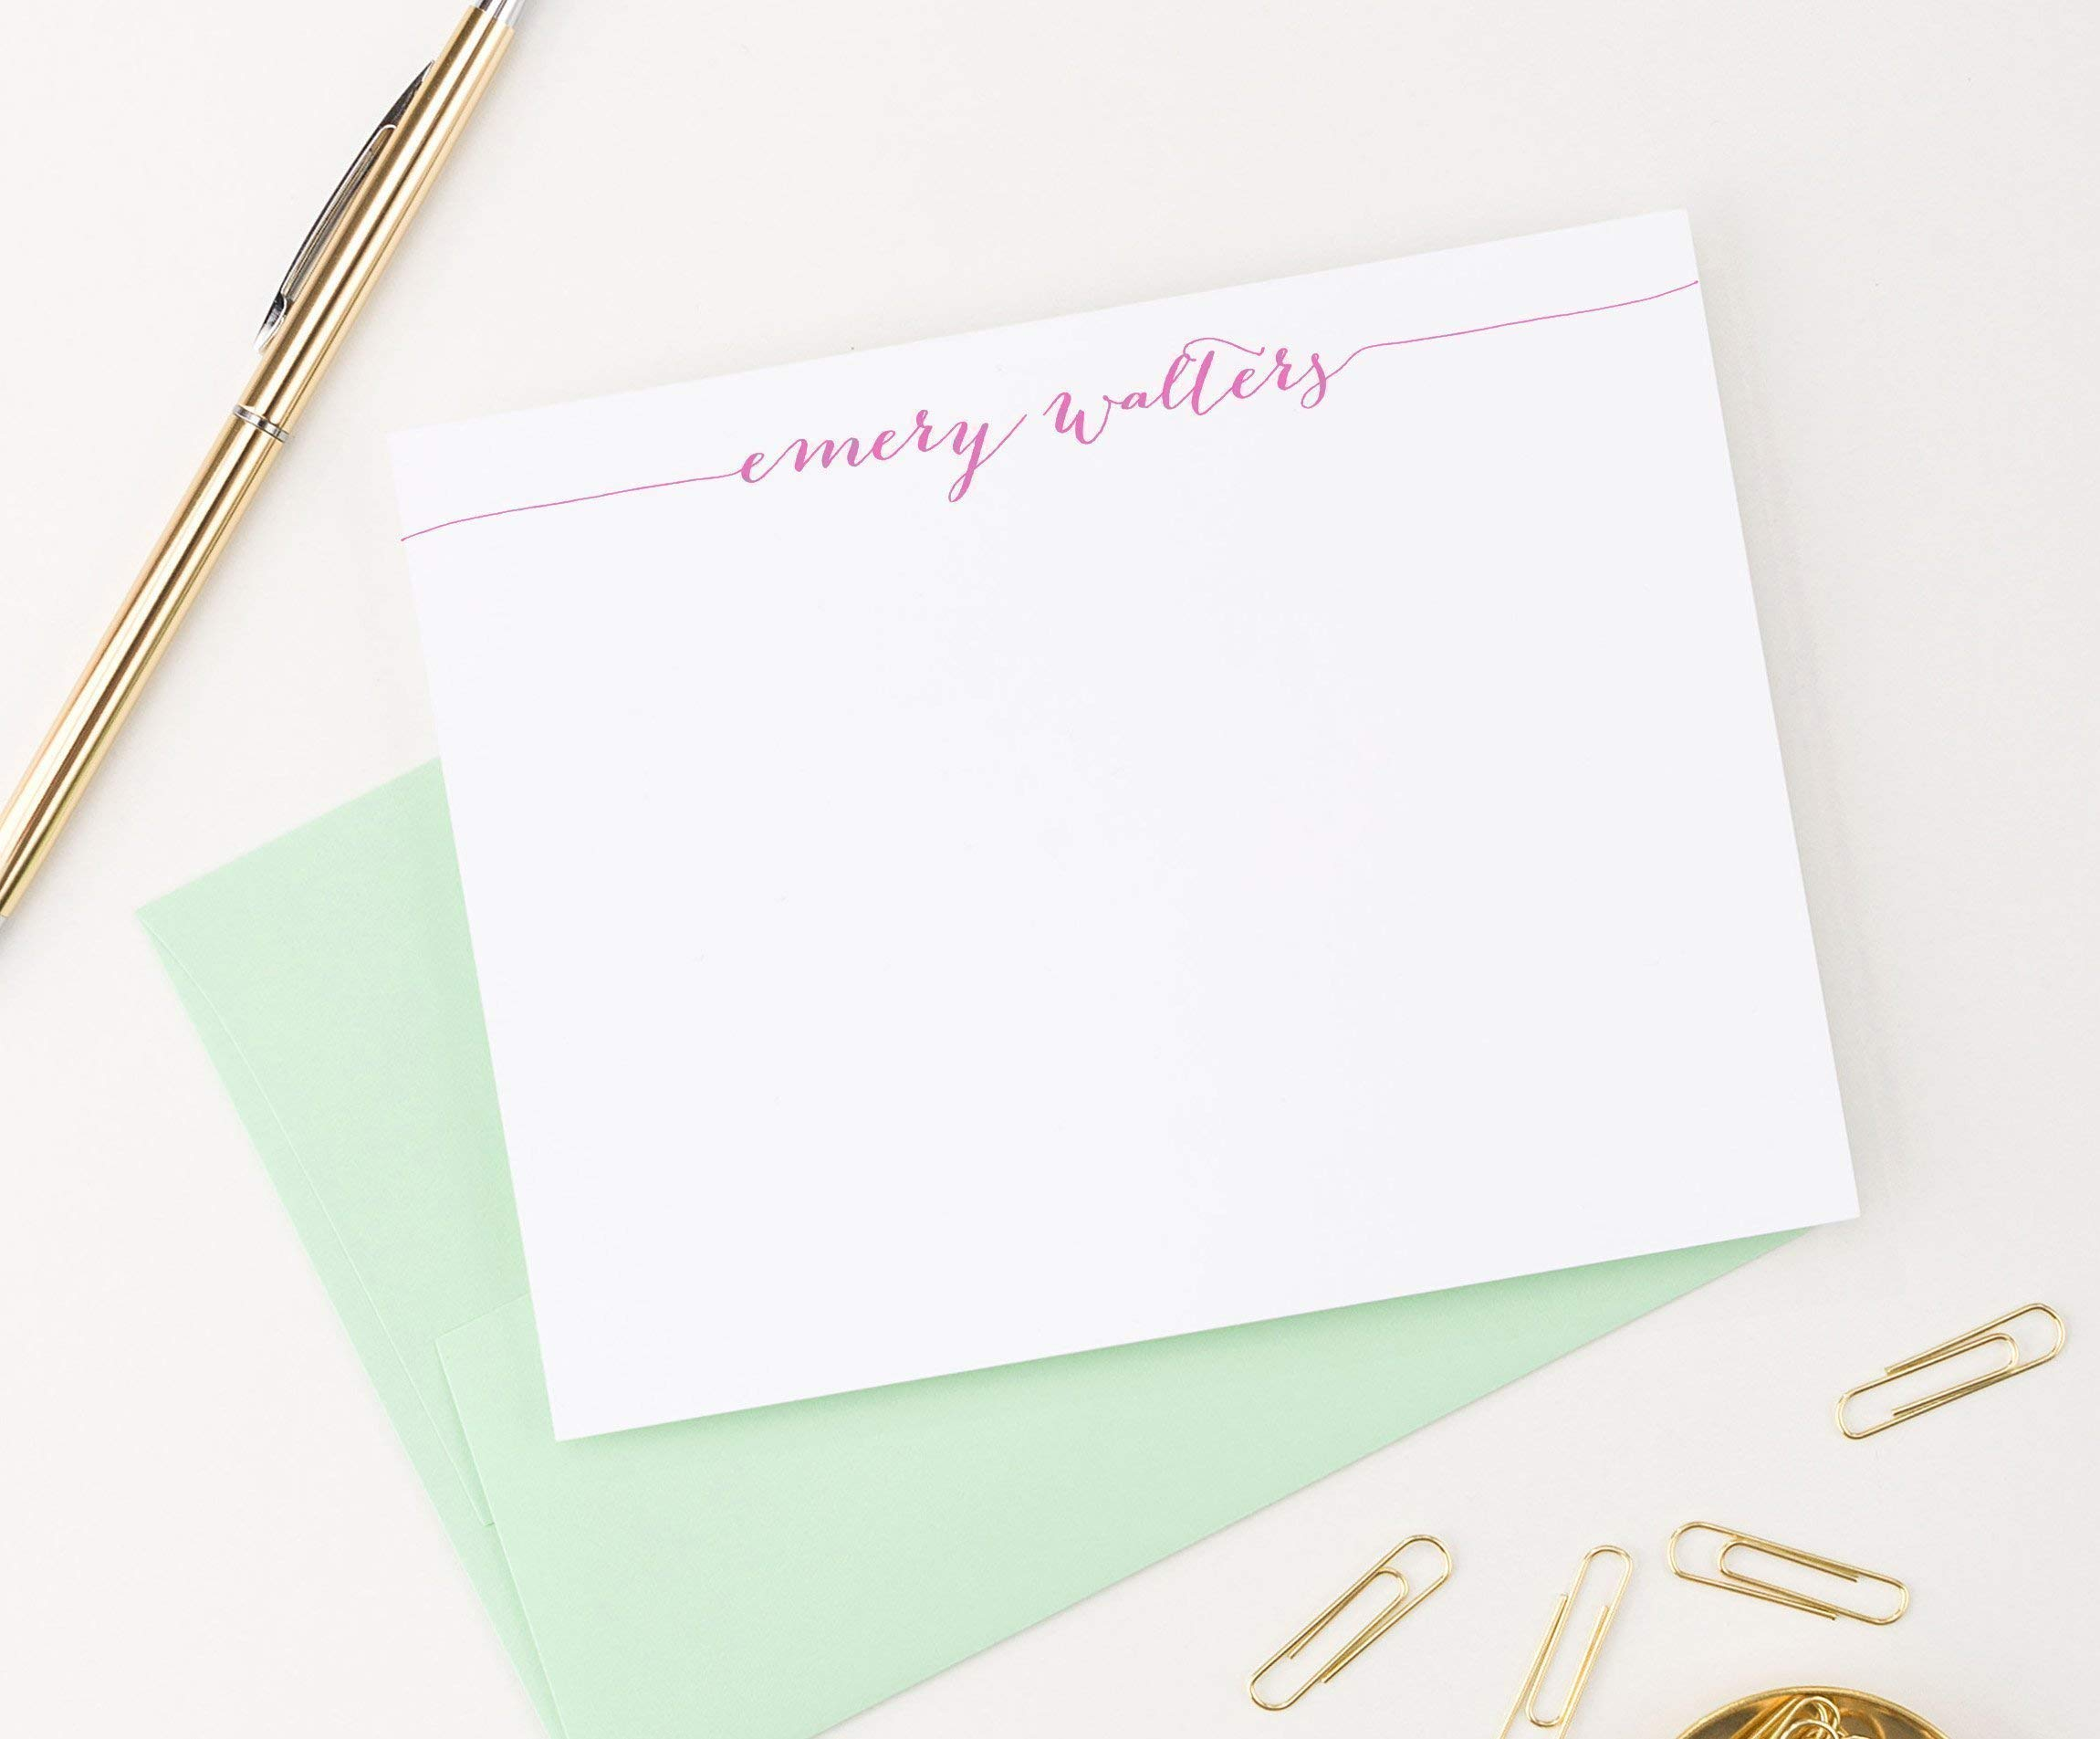 Calligraphy Personalized Stationery Set, Personalized Note cards, Your Choice of Colors, Set of 10 flat note cards and envelopes